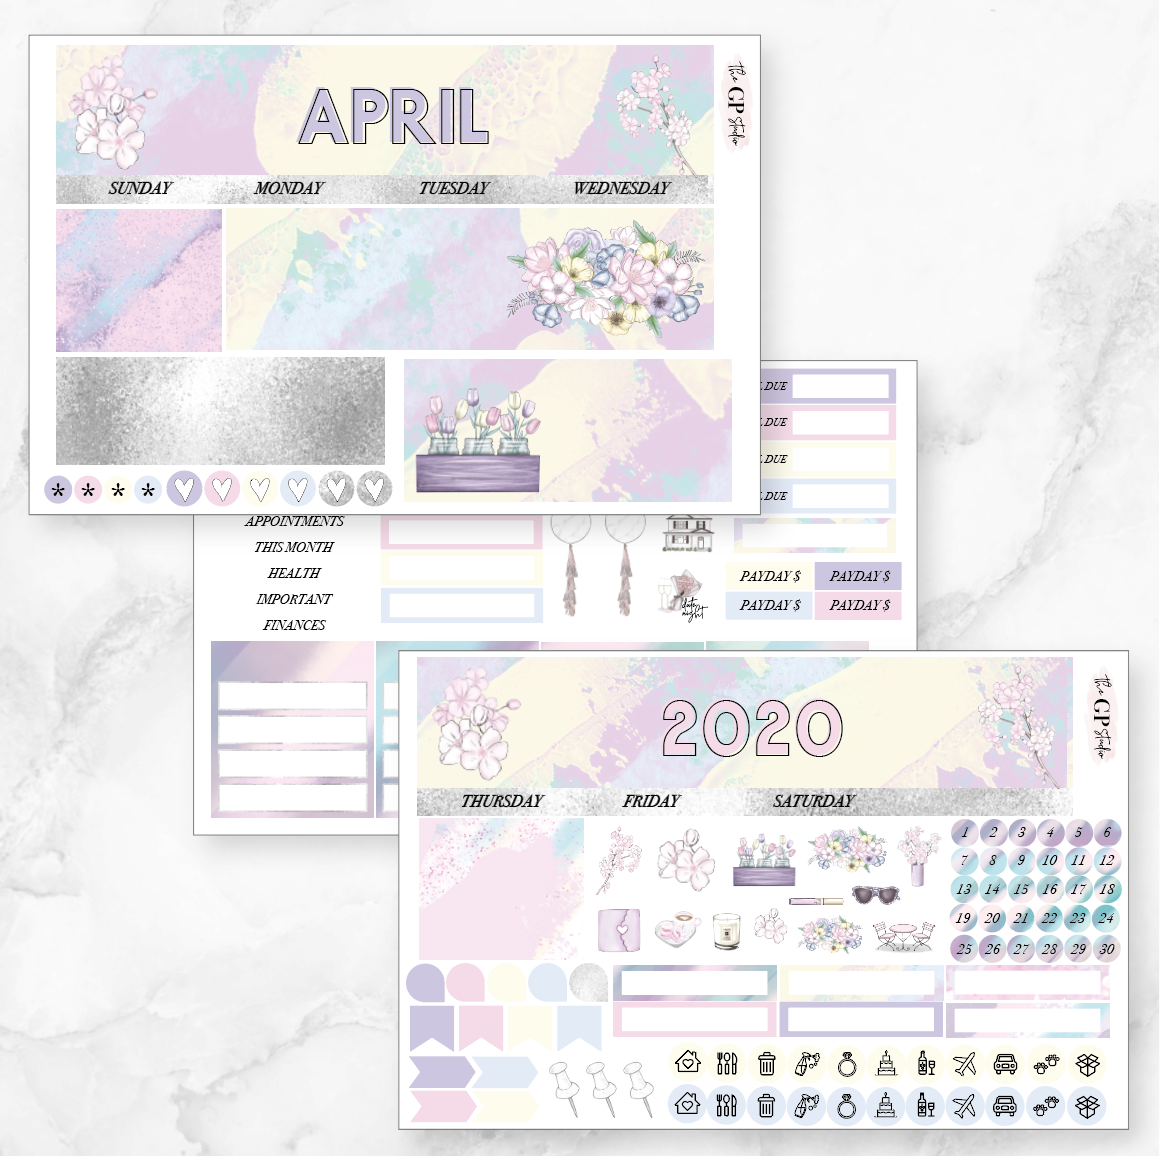 APRIL 2020 Monthly View Sticker Kit Erin Condren Size-The GP Studio